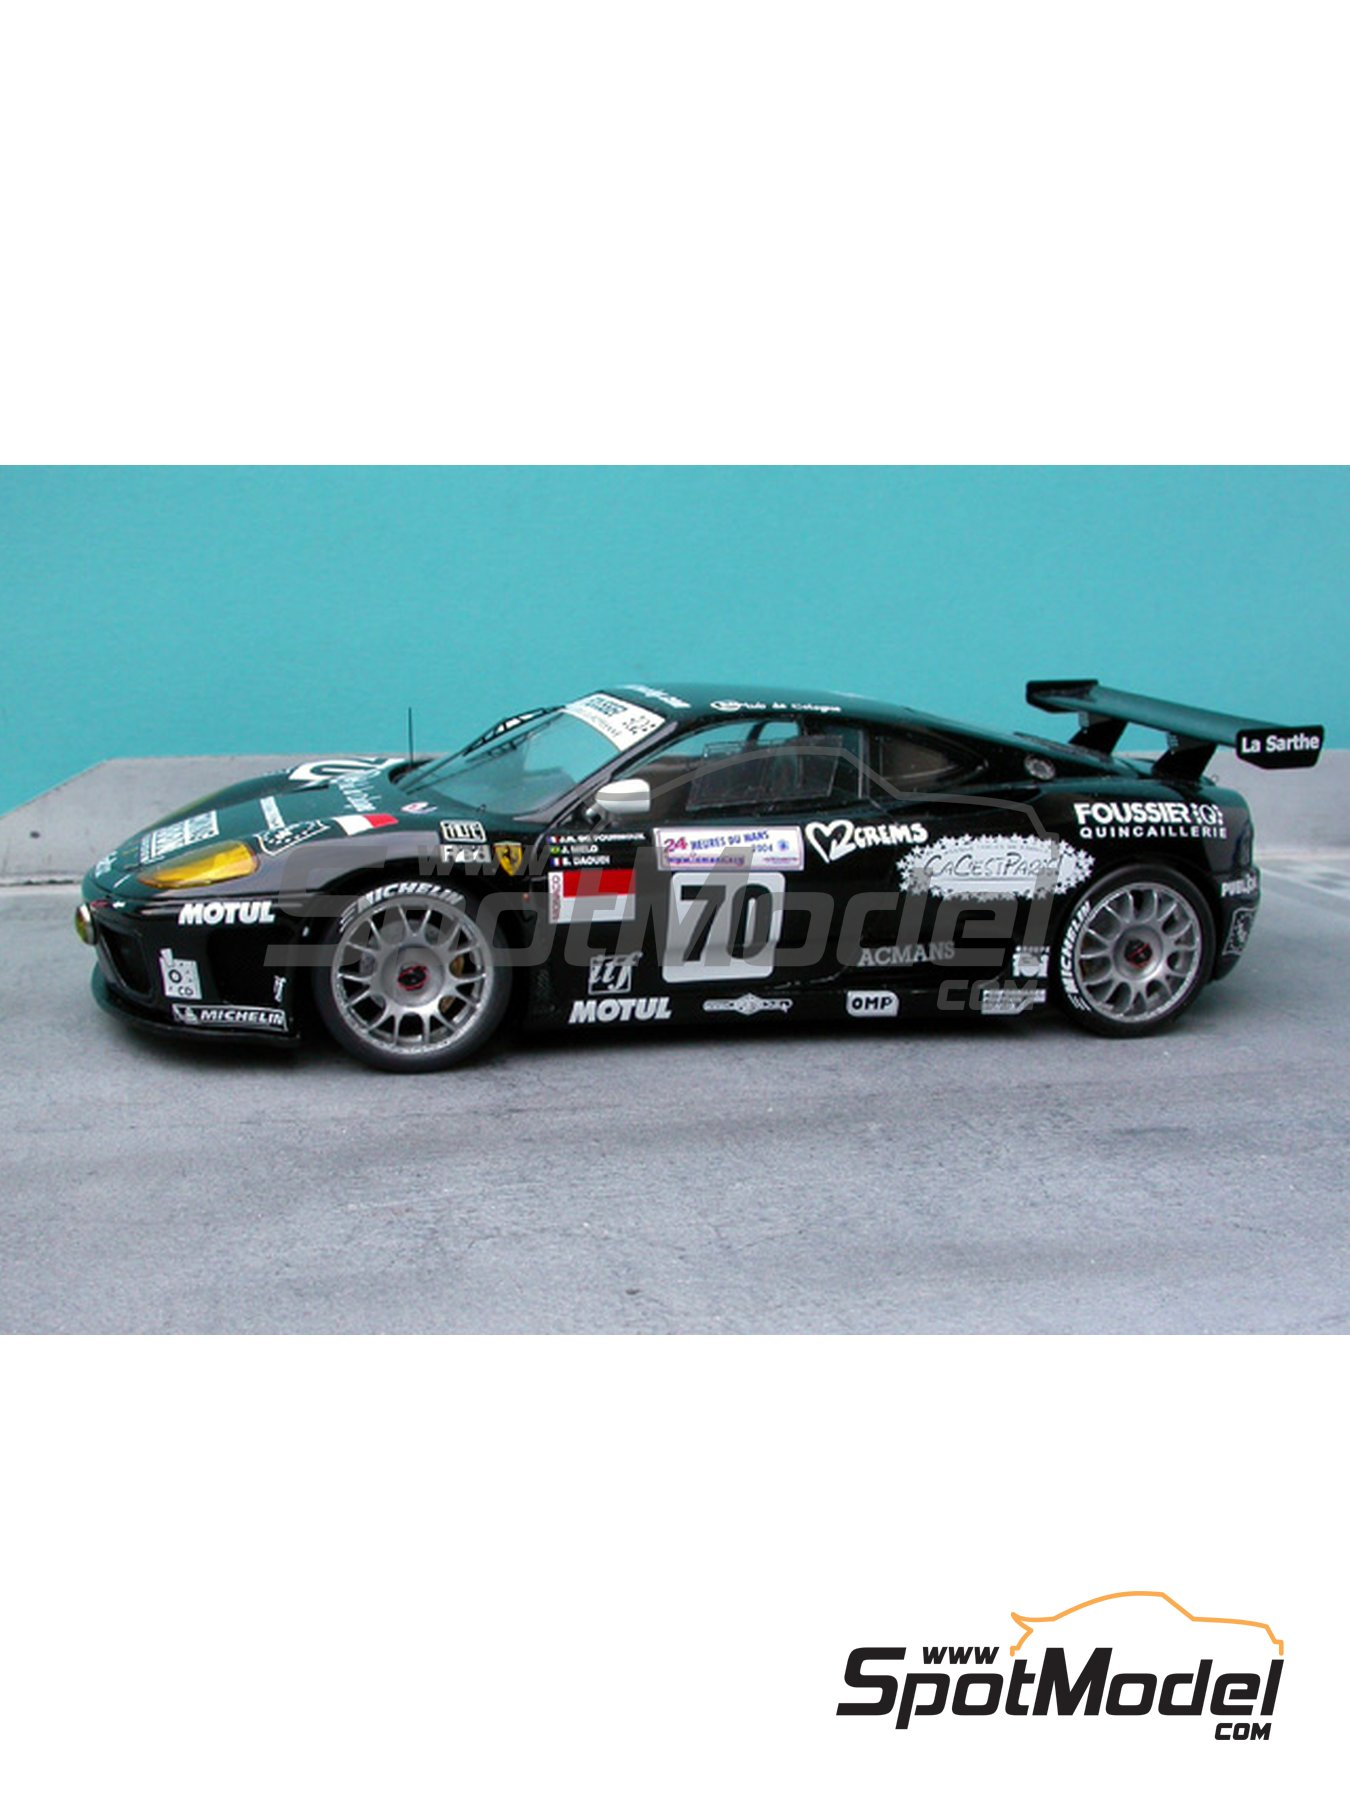 Ferrari 360 Modena JMB | Marking / livery in 1/24 scale manufactured by Renaissance Models (ref.TK24-187) image